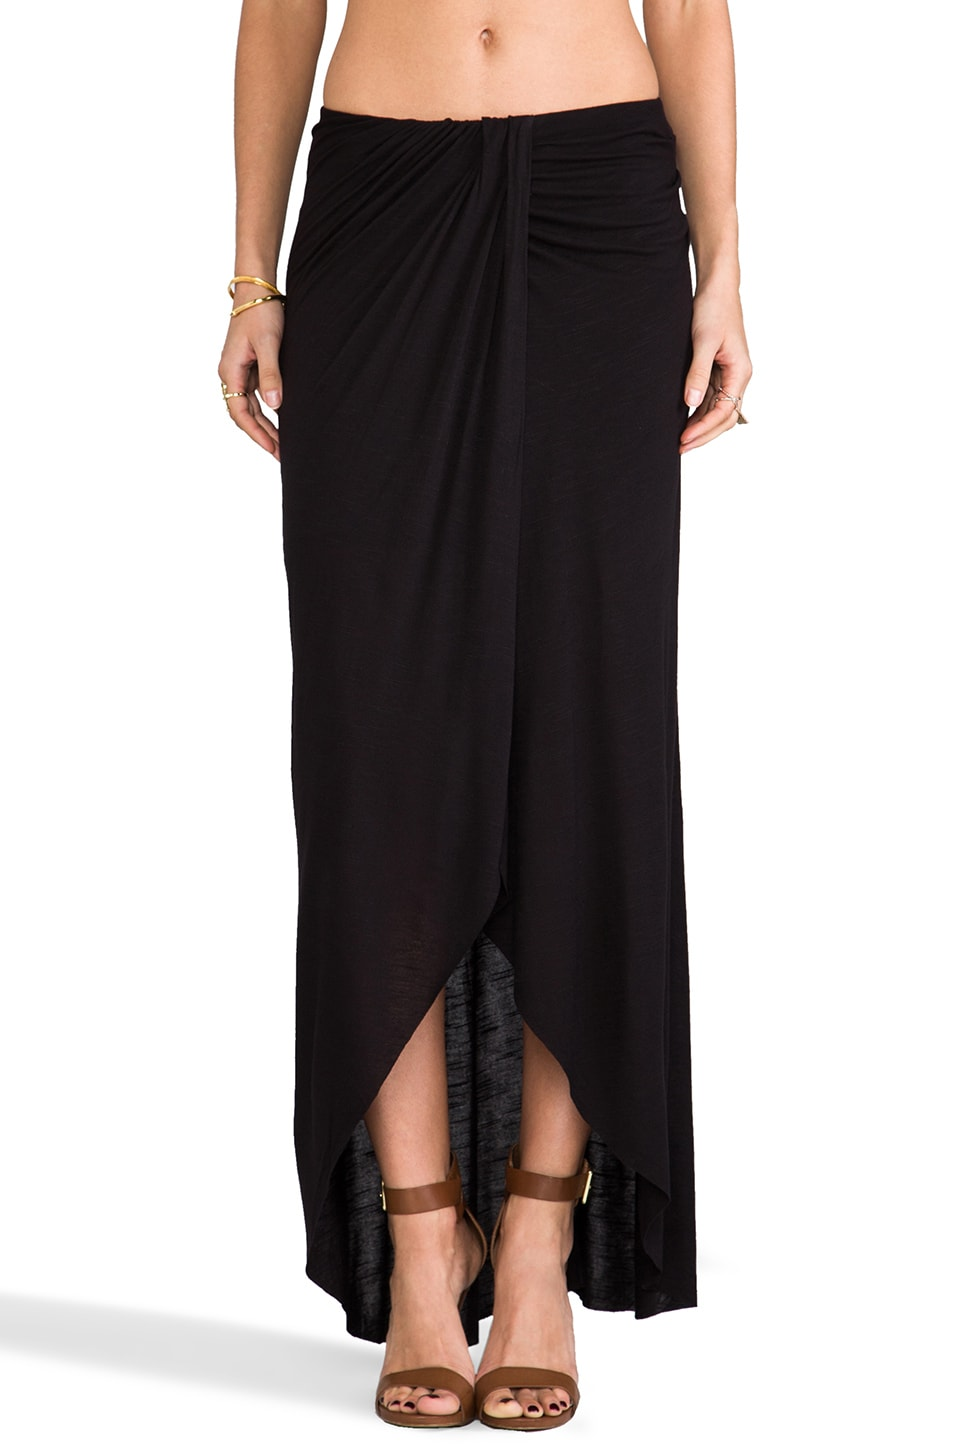 Free People Slubby Column Skirt in Black